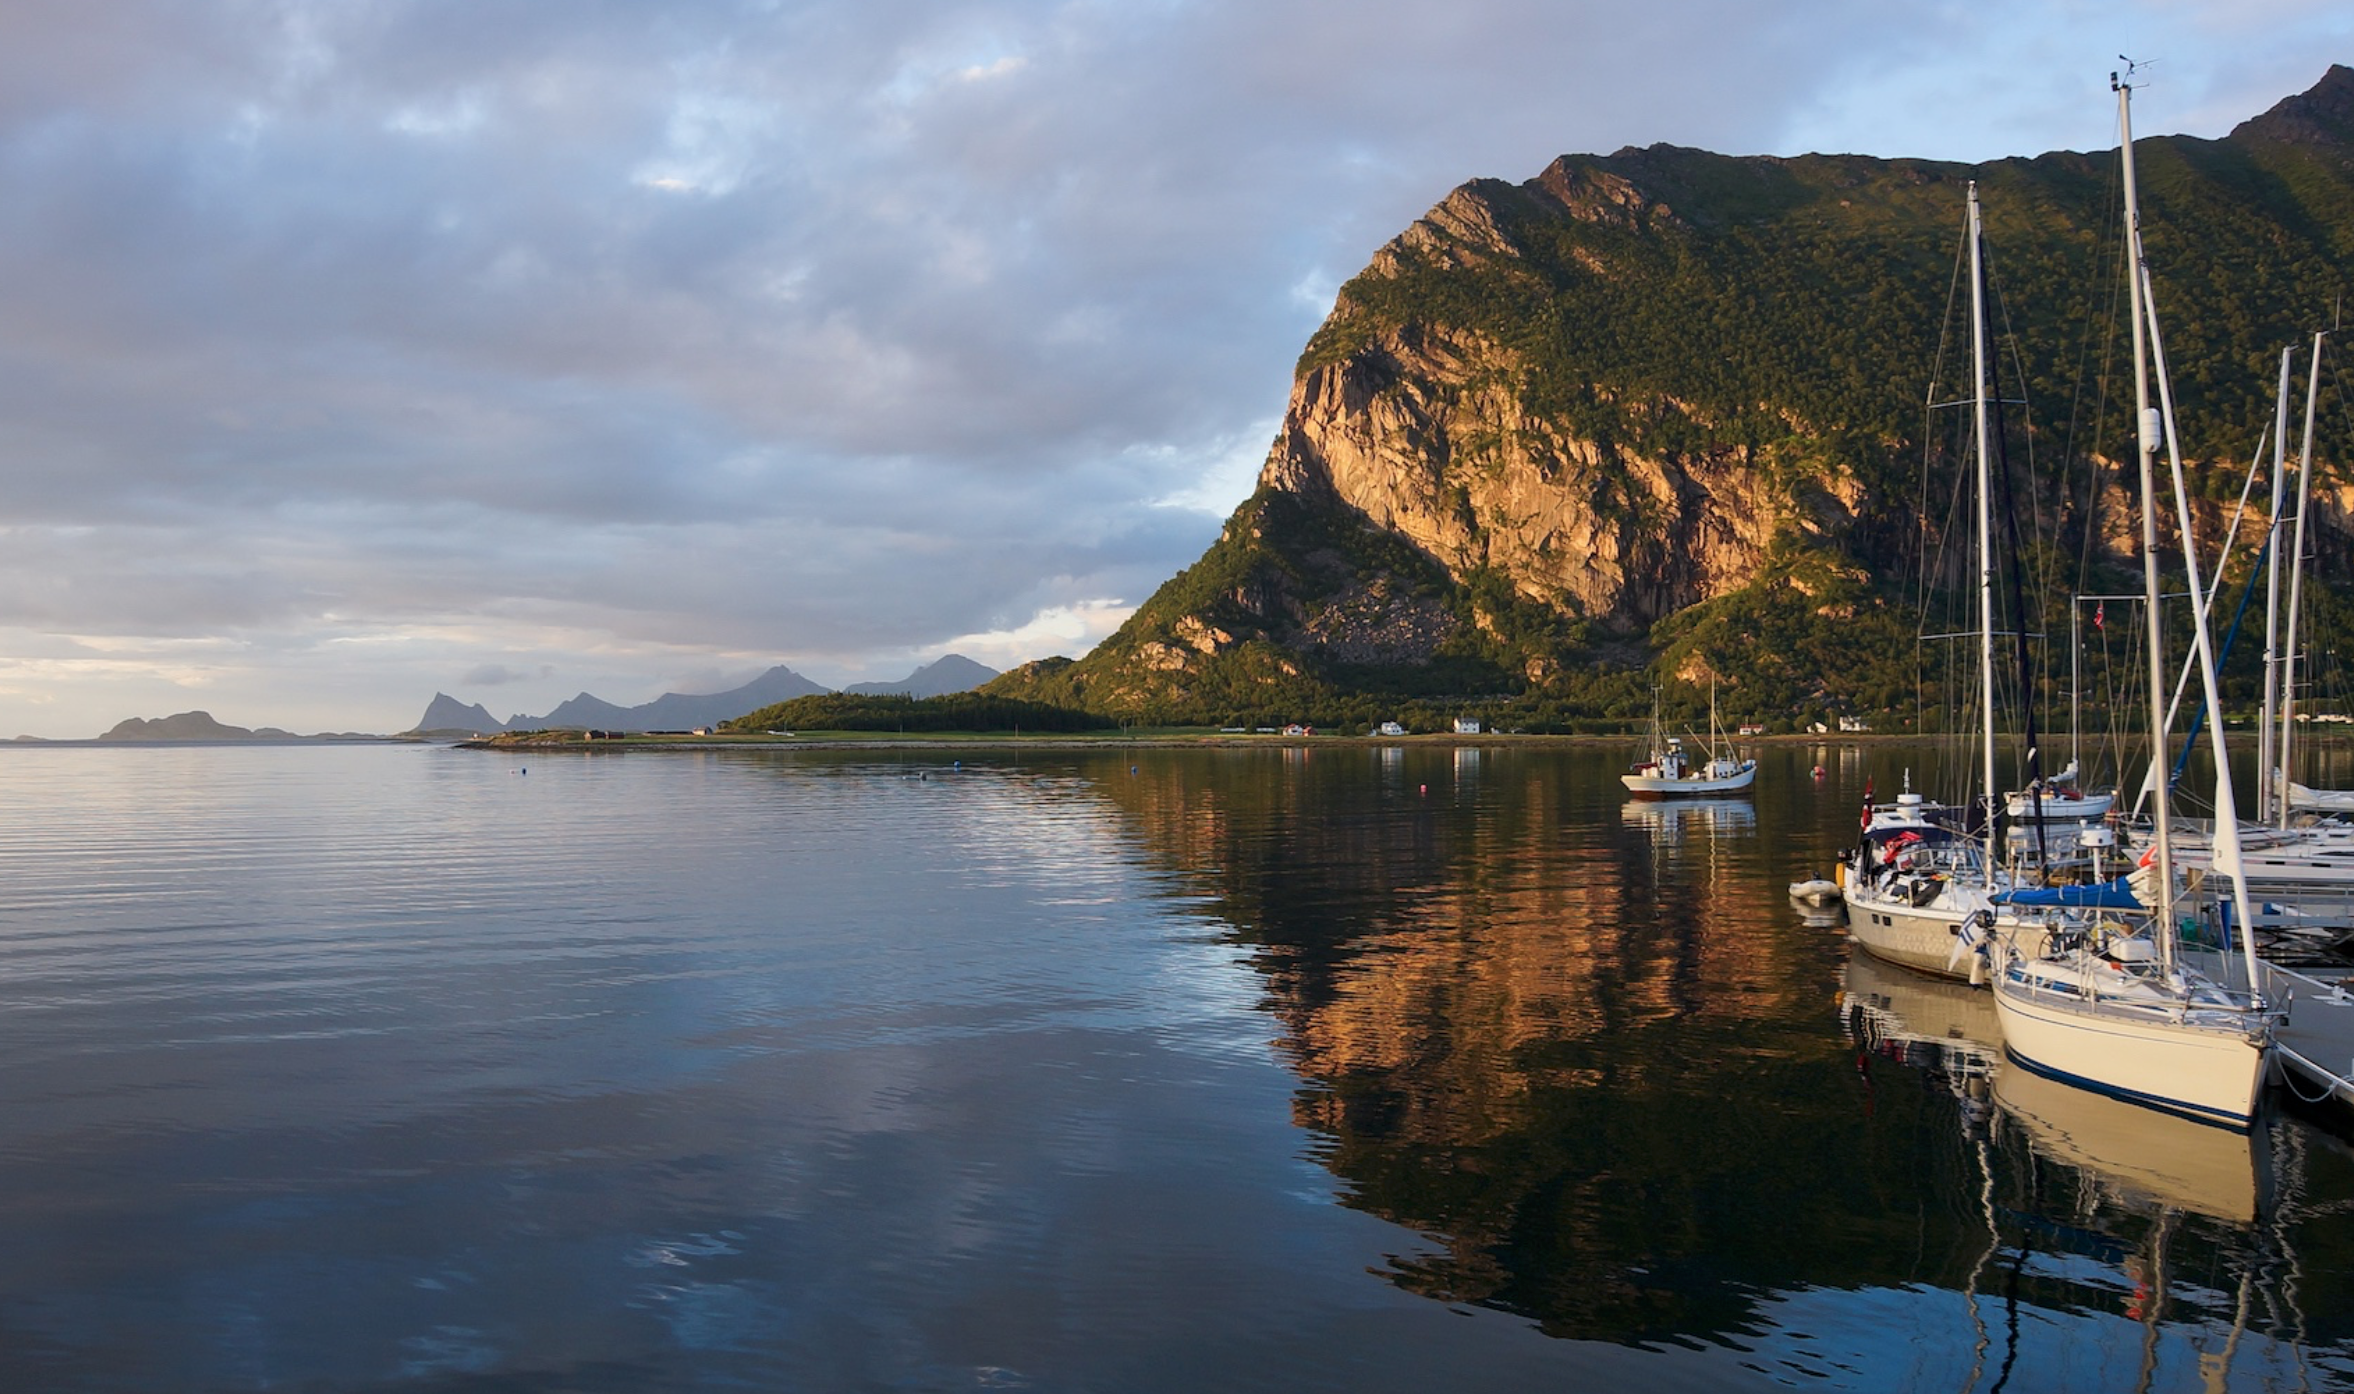 Extraordinary scenery in Norway. S/Y Ruffe in the foreground